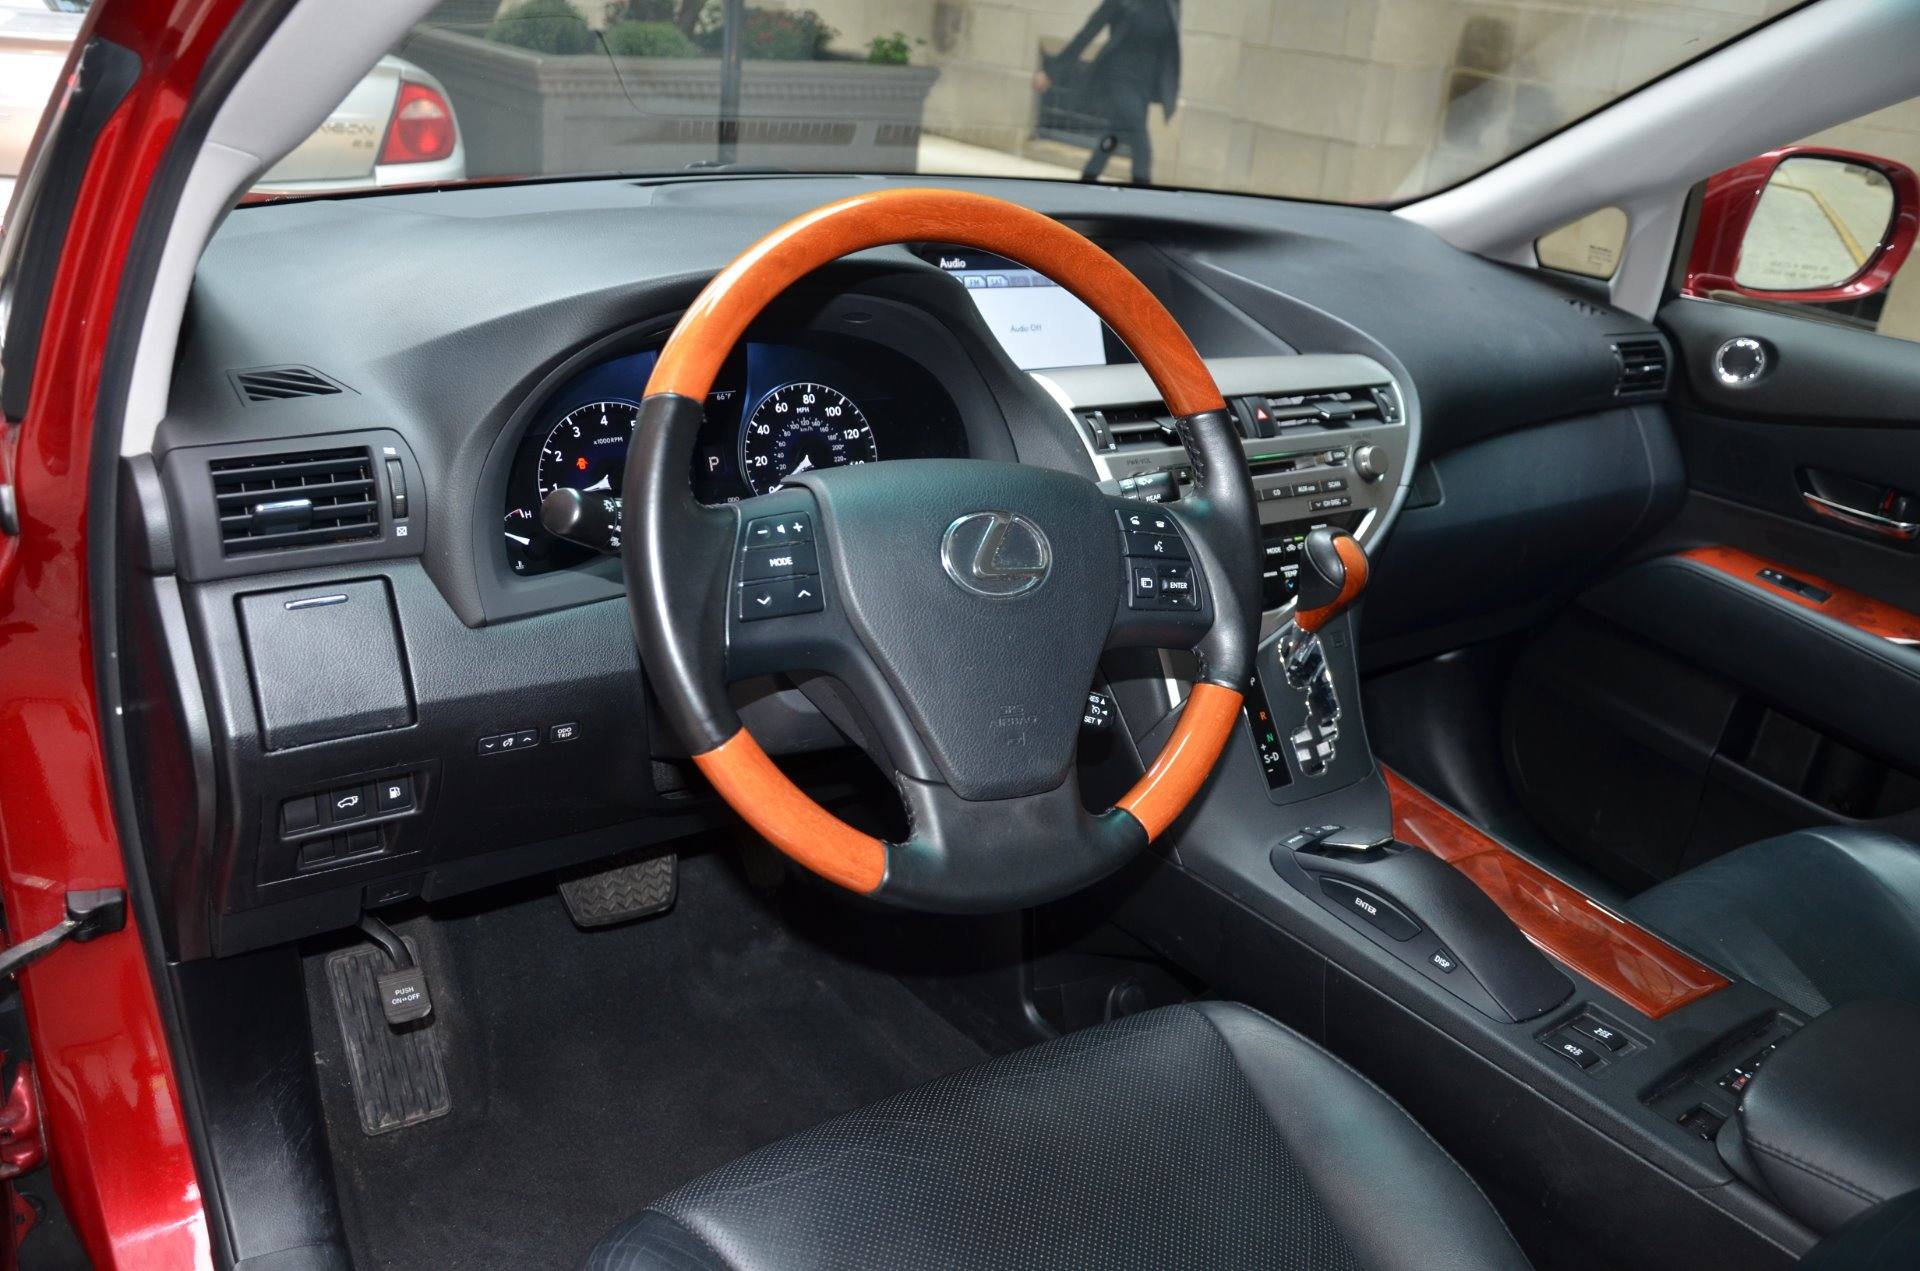 2012 Lexus RX 350 Stock M526A for sale near Chicago IL